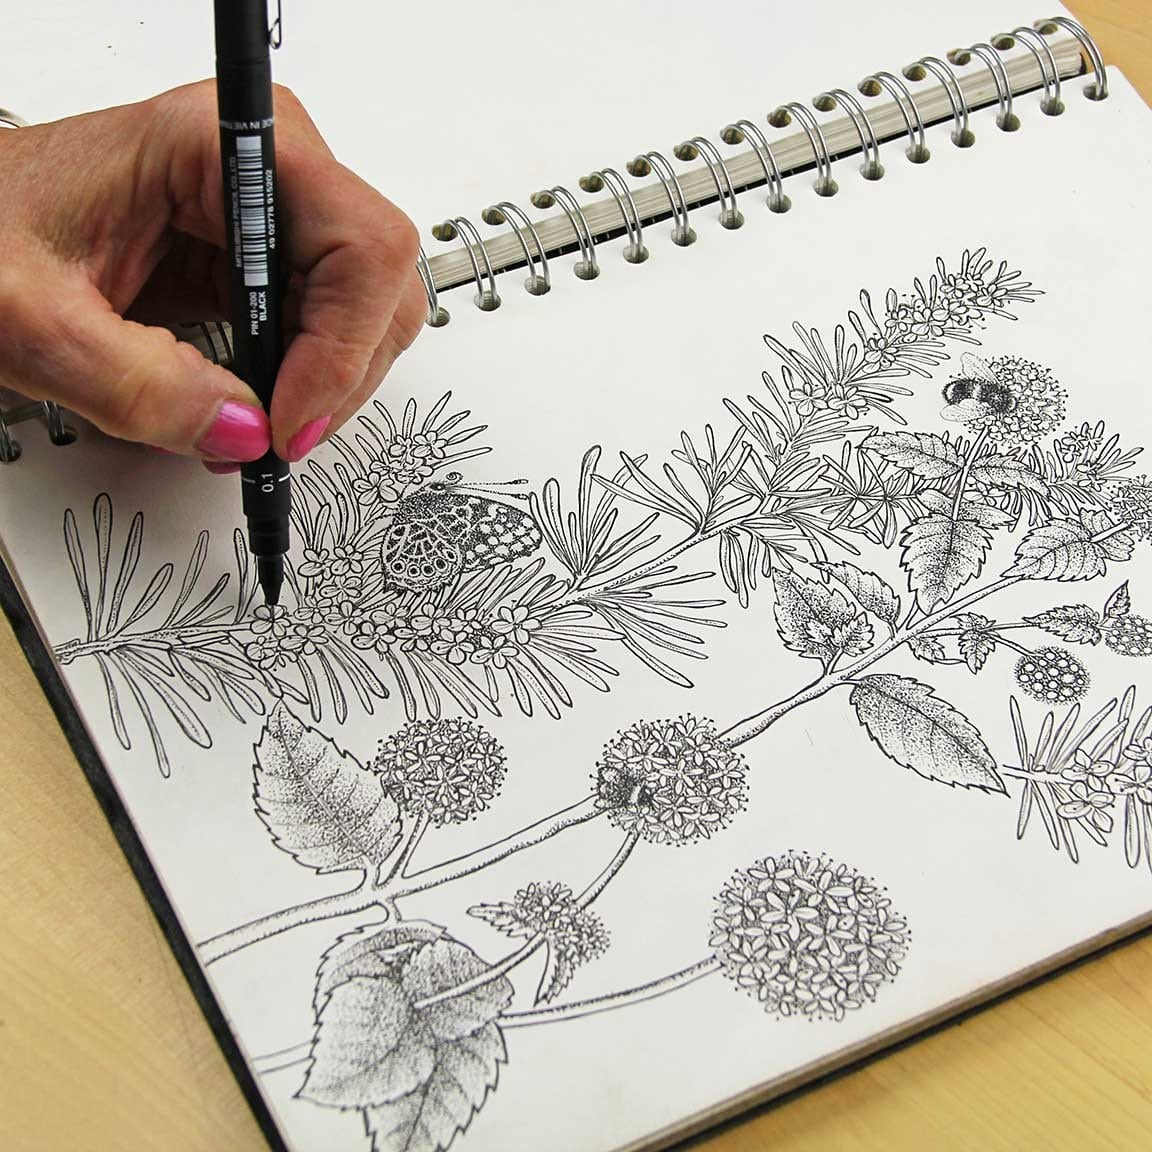 watermint-rosemary-drawing.jpg